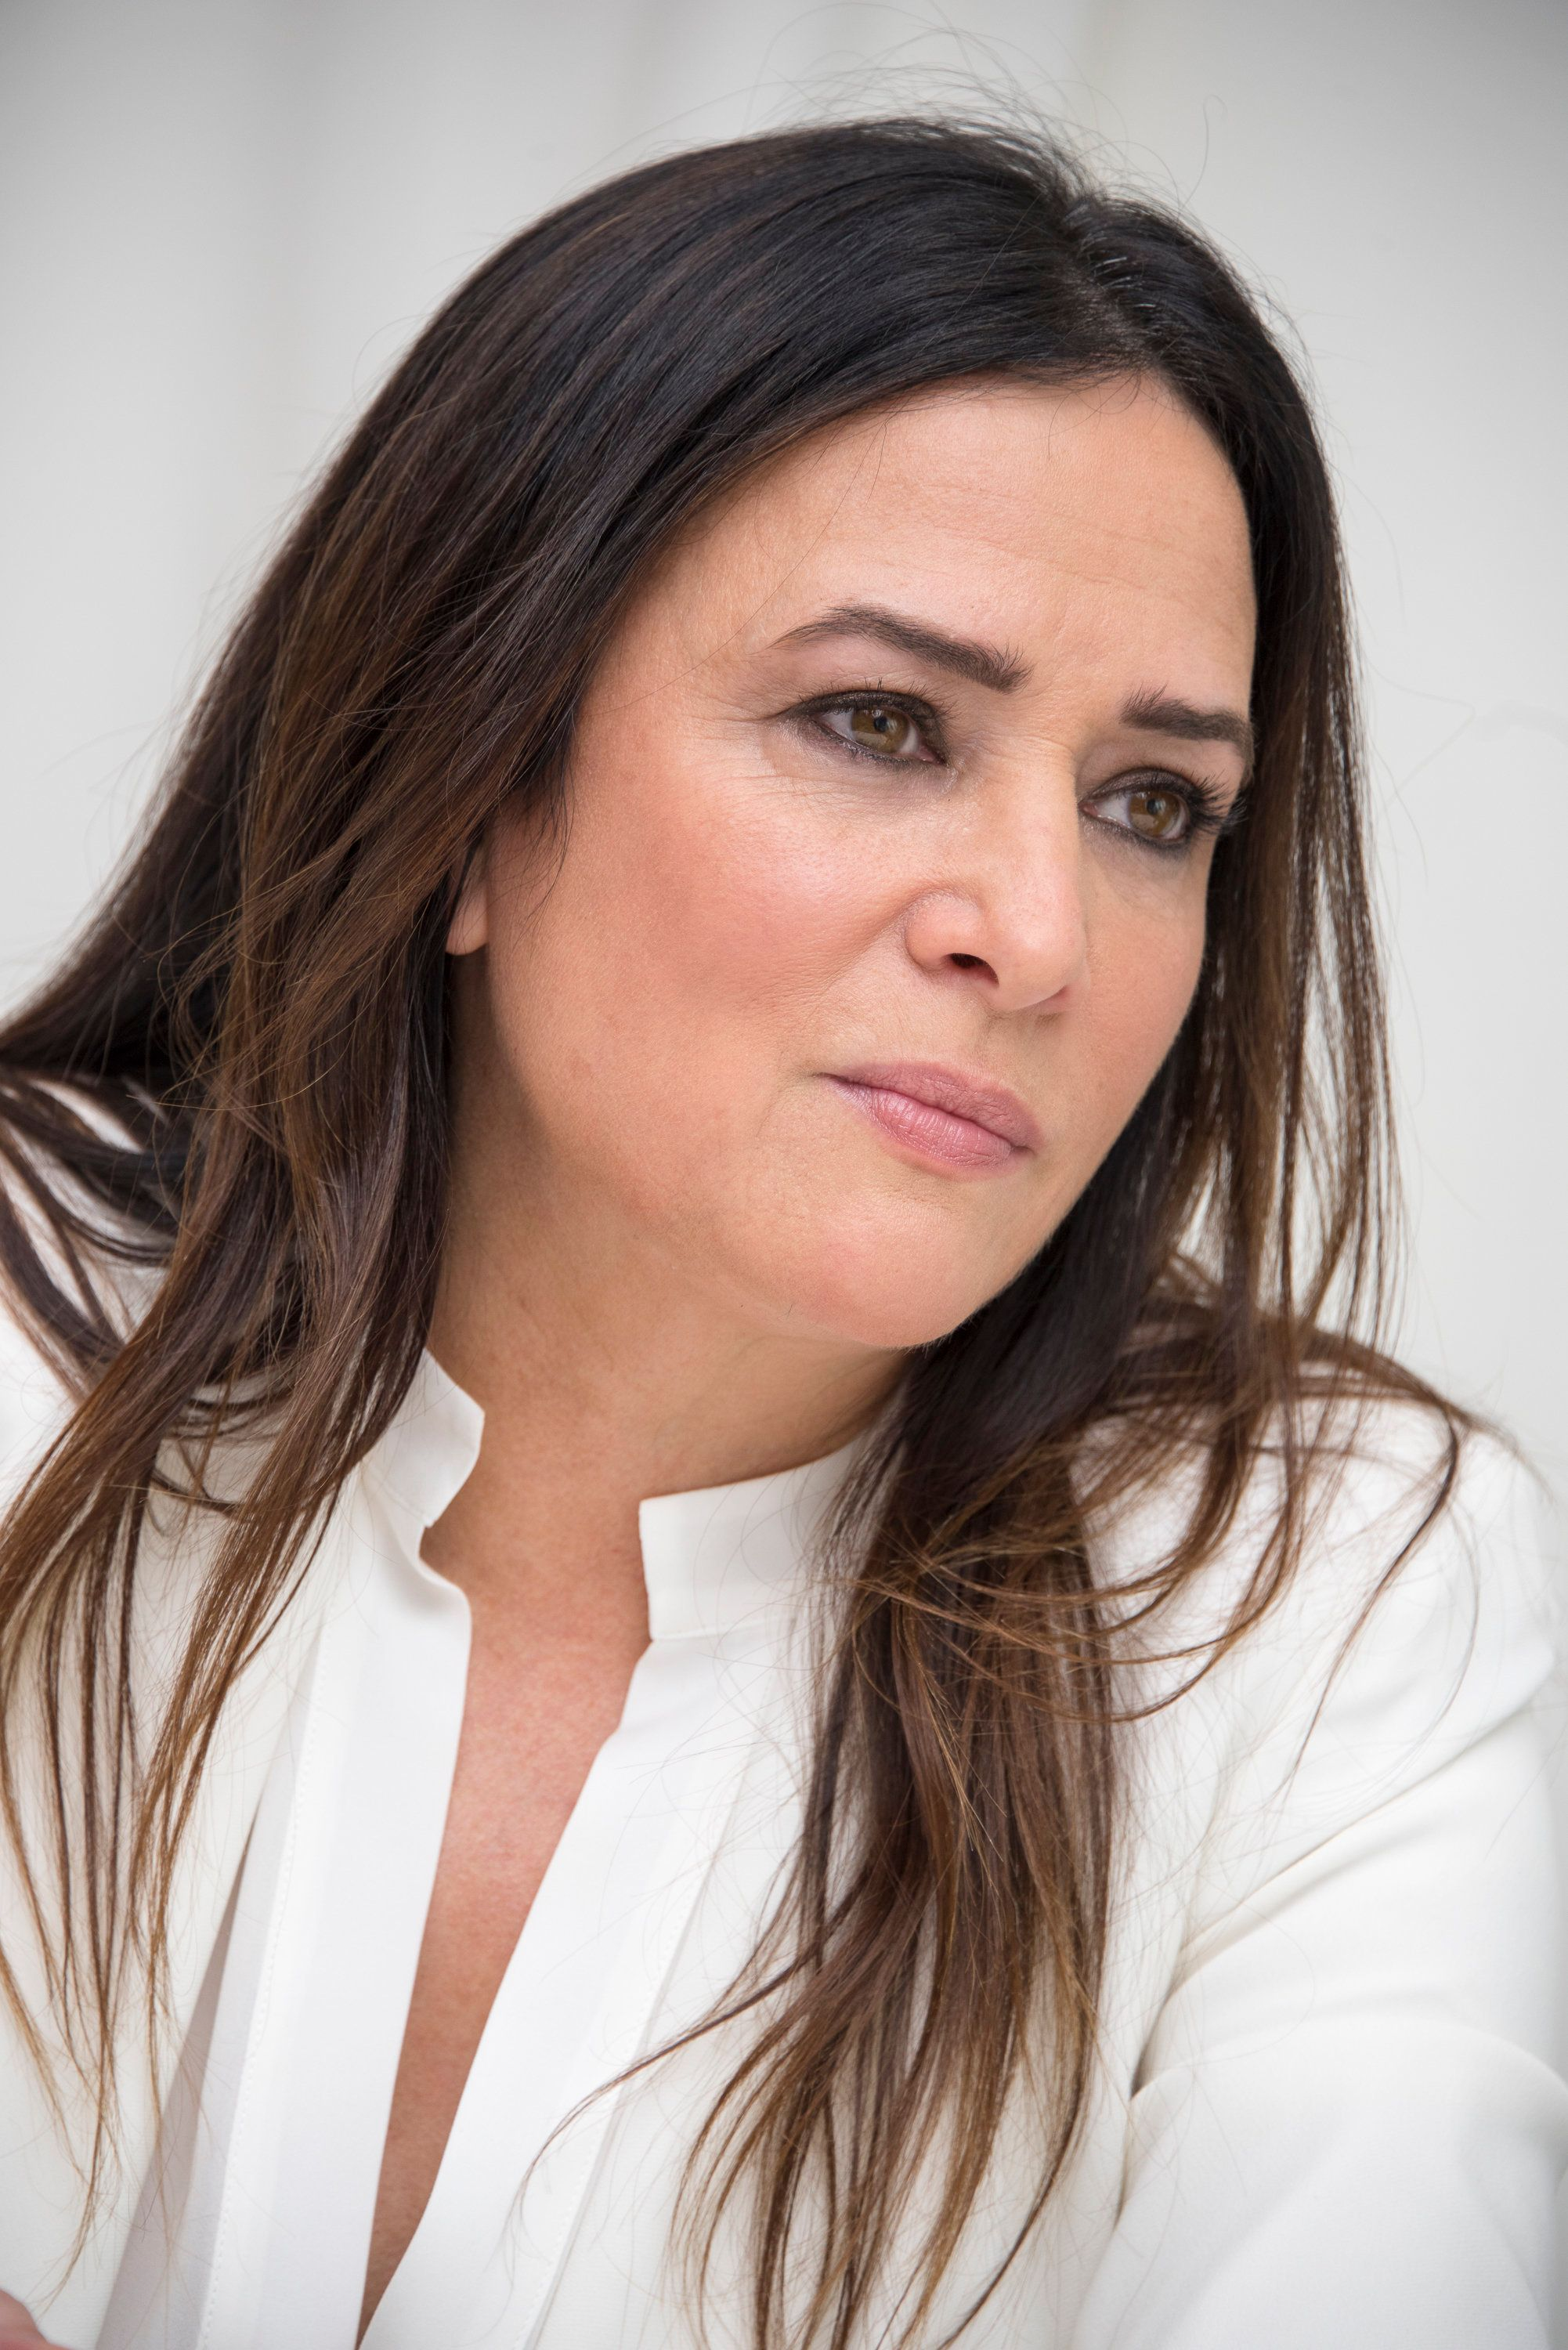 BEVERLY HILLS, CA - OCTOBER 06:  Pamela Adlon at the 'Better Things' Press Conference at the SLS Hotel on October 6, 2017 in Beverly Hills, California.  (Photo by Vera Anderson/WireImage)